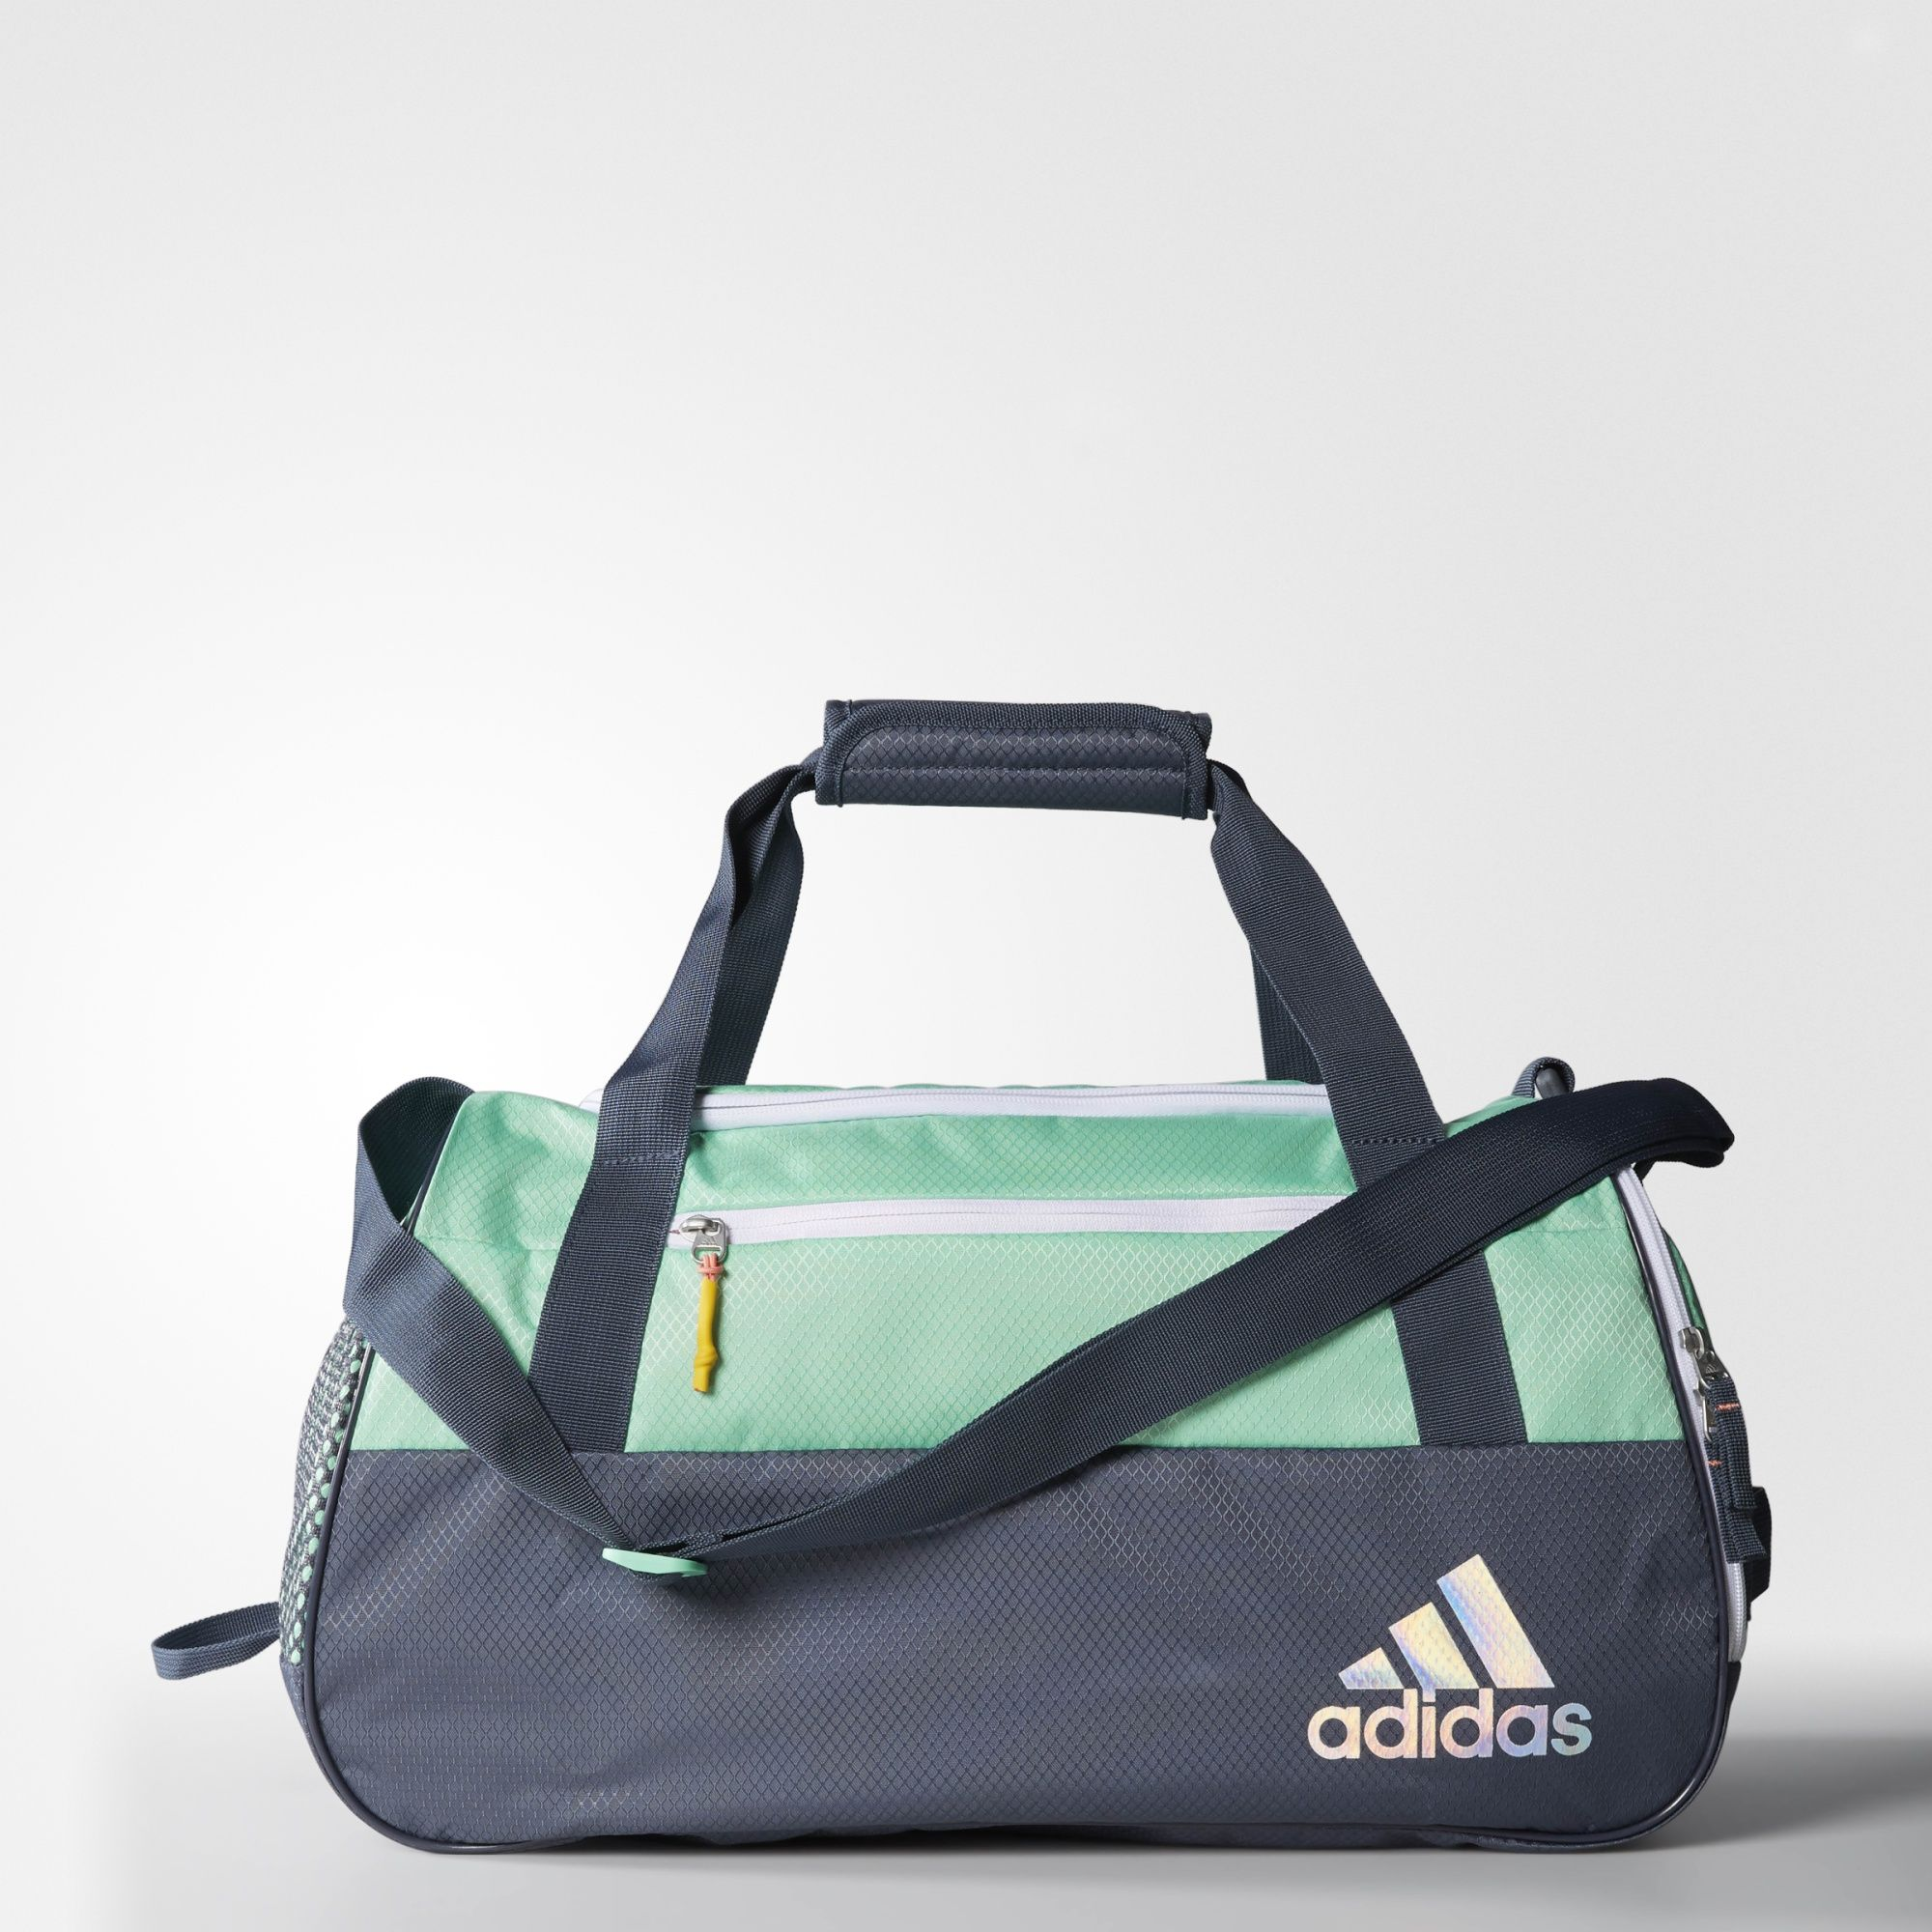 Everything Has Its Place In This Women S Training Duffel Bag A Roomy Main Compartment Gives You Quick Access To Equipment Or Personal Items Bags Adidas Green